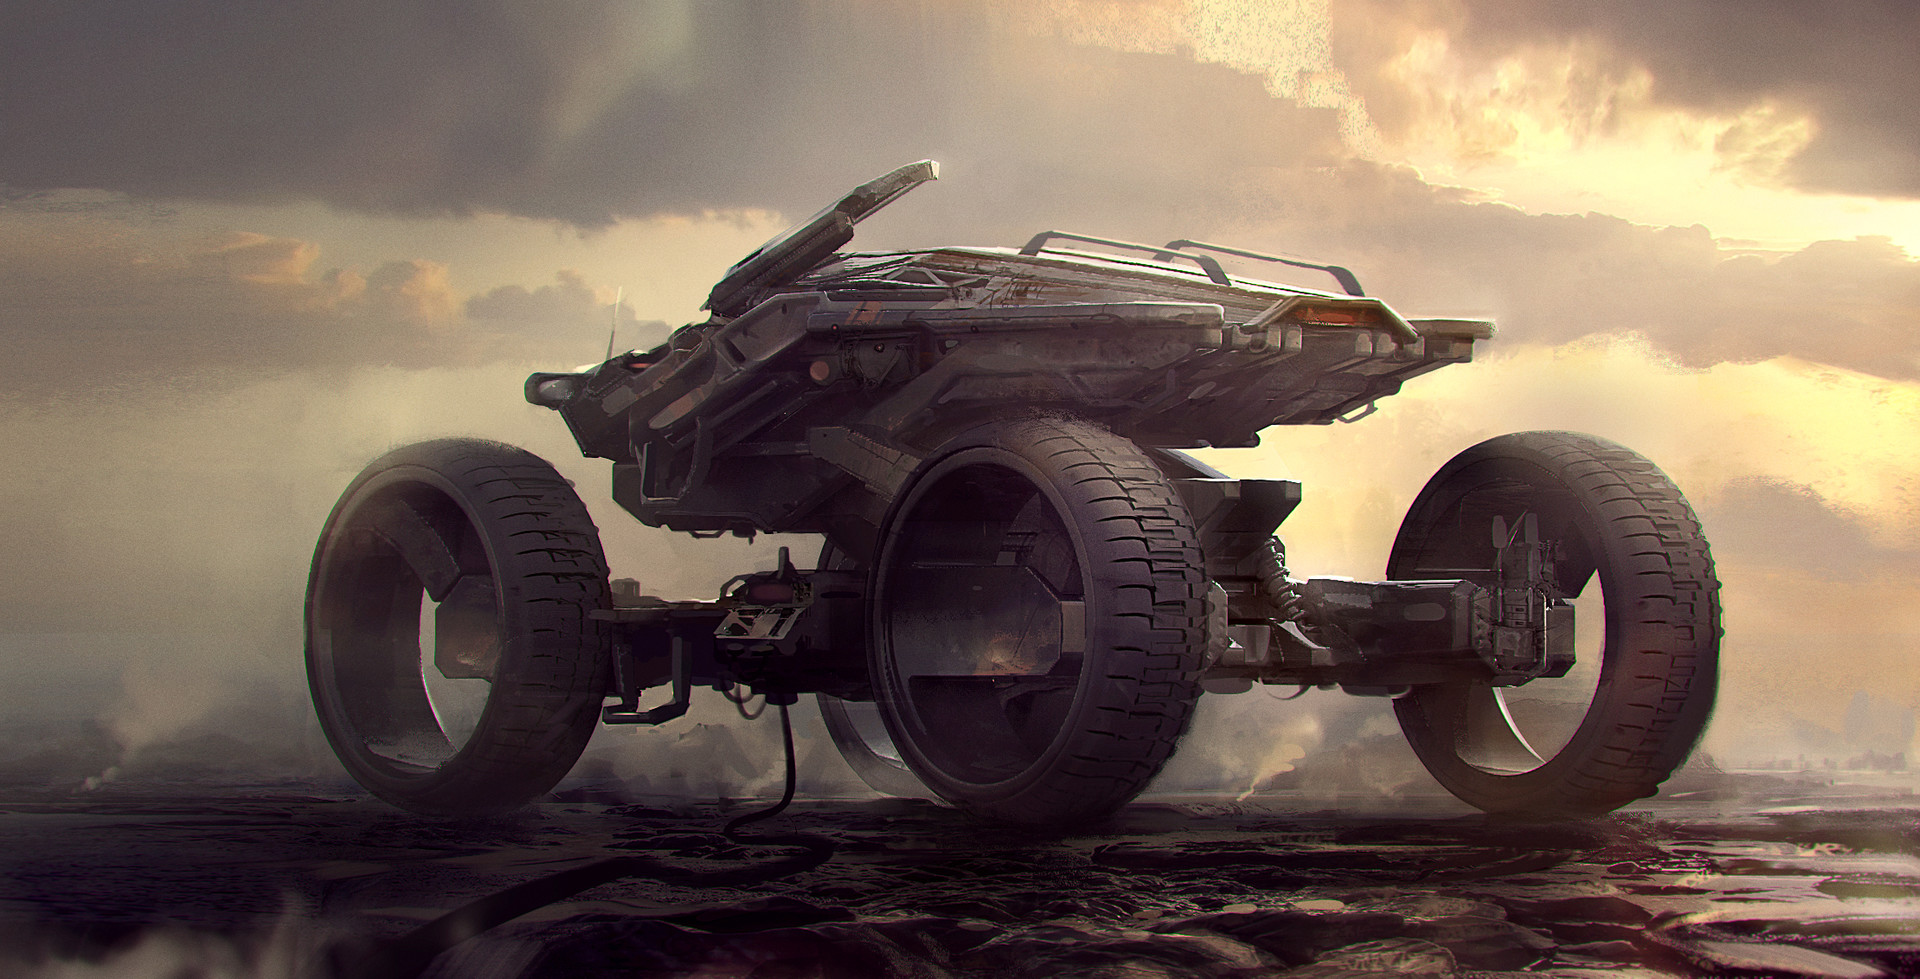 The Sci-Fi Concept Art of Arnaud Kleindienst